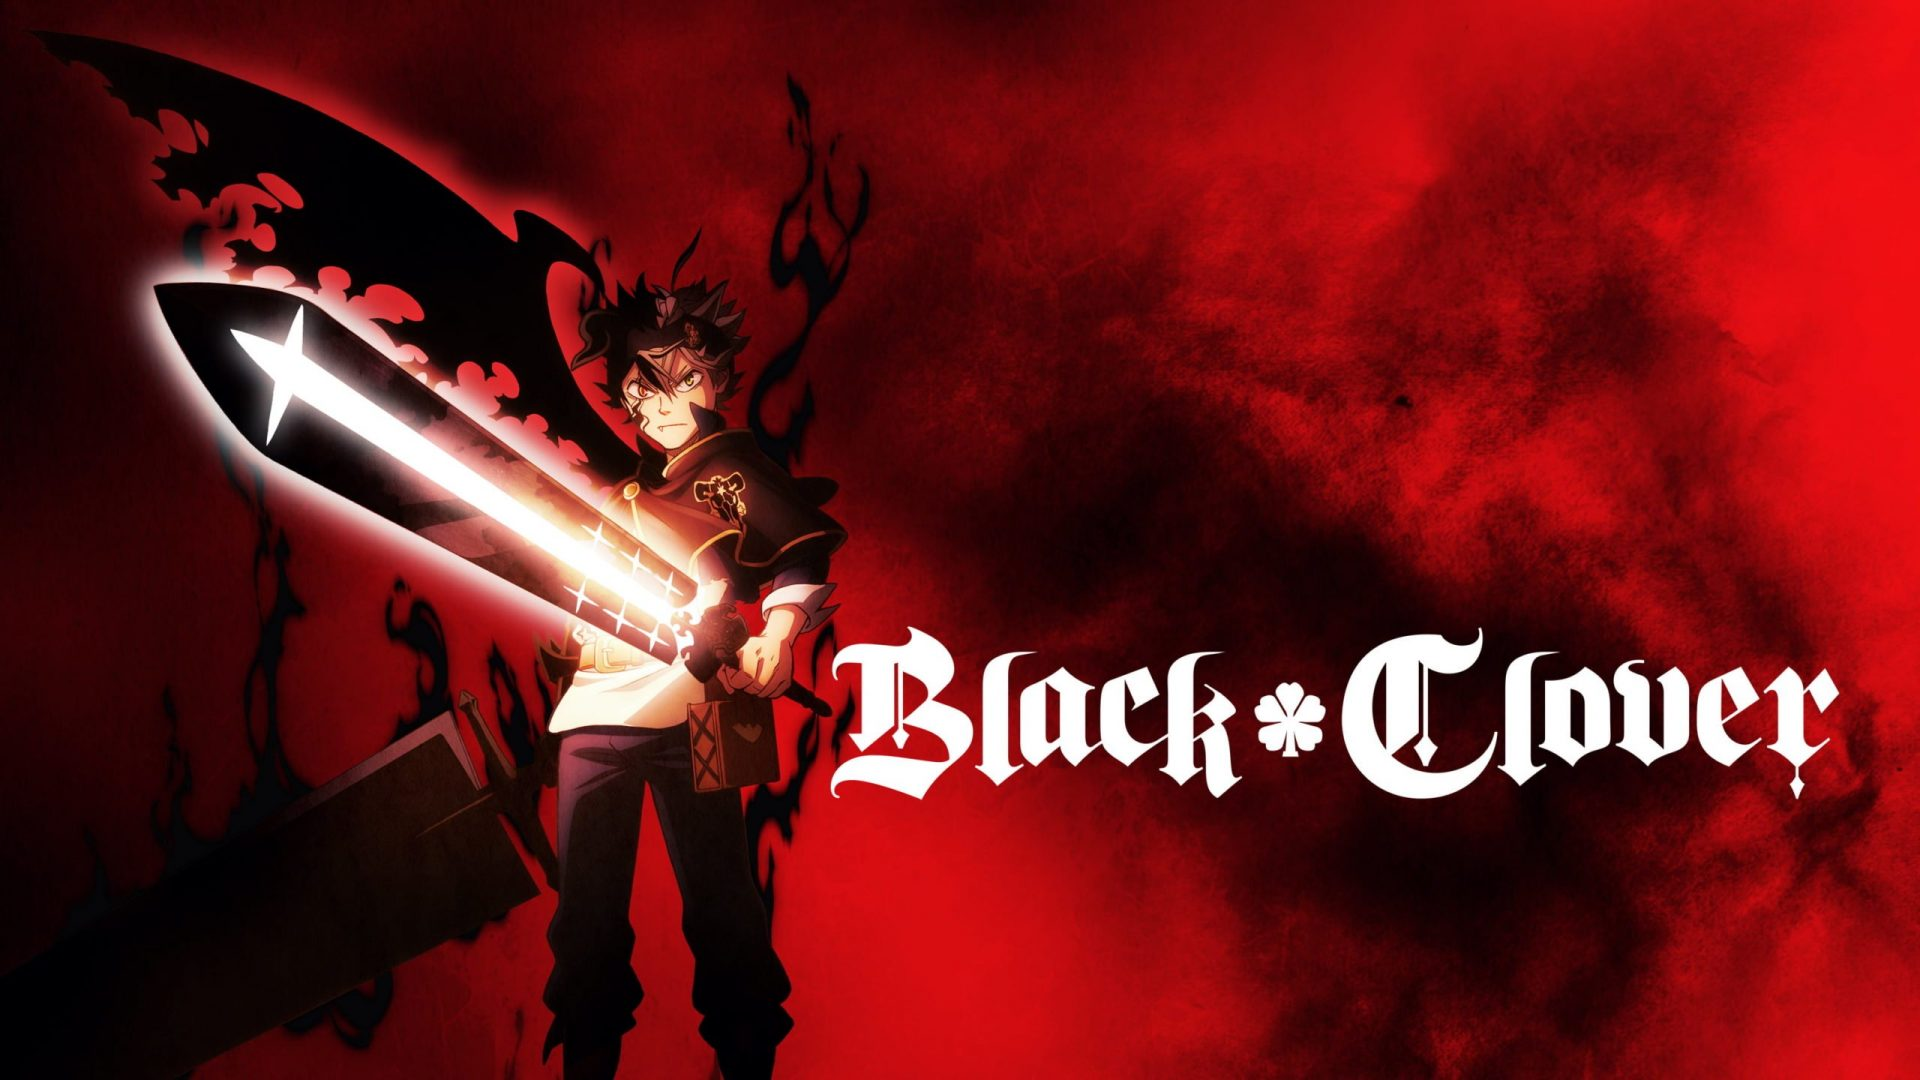 Black Clover Chapter 261 Release Date, Raw Scans and Read Online